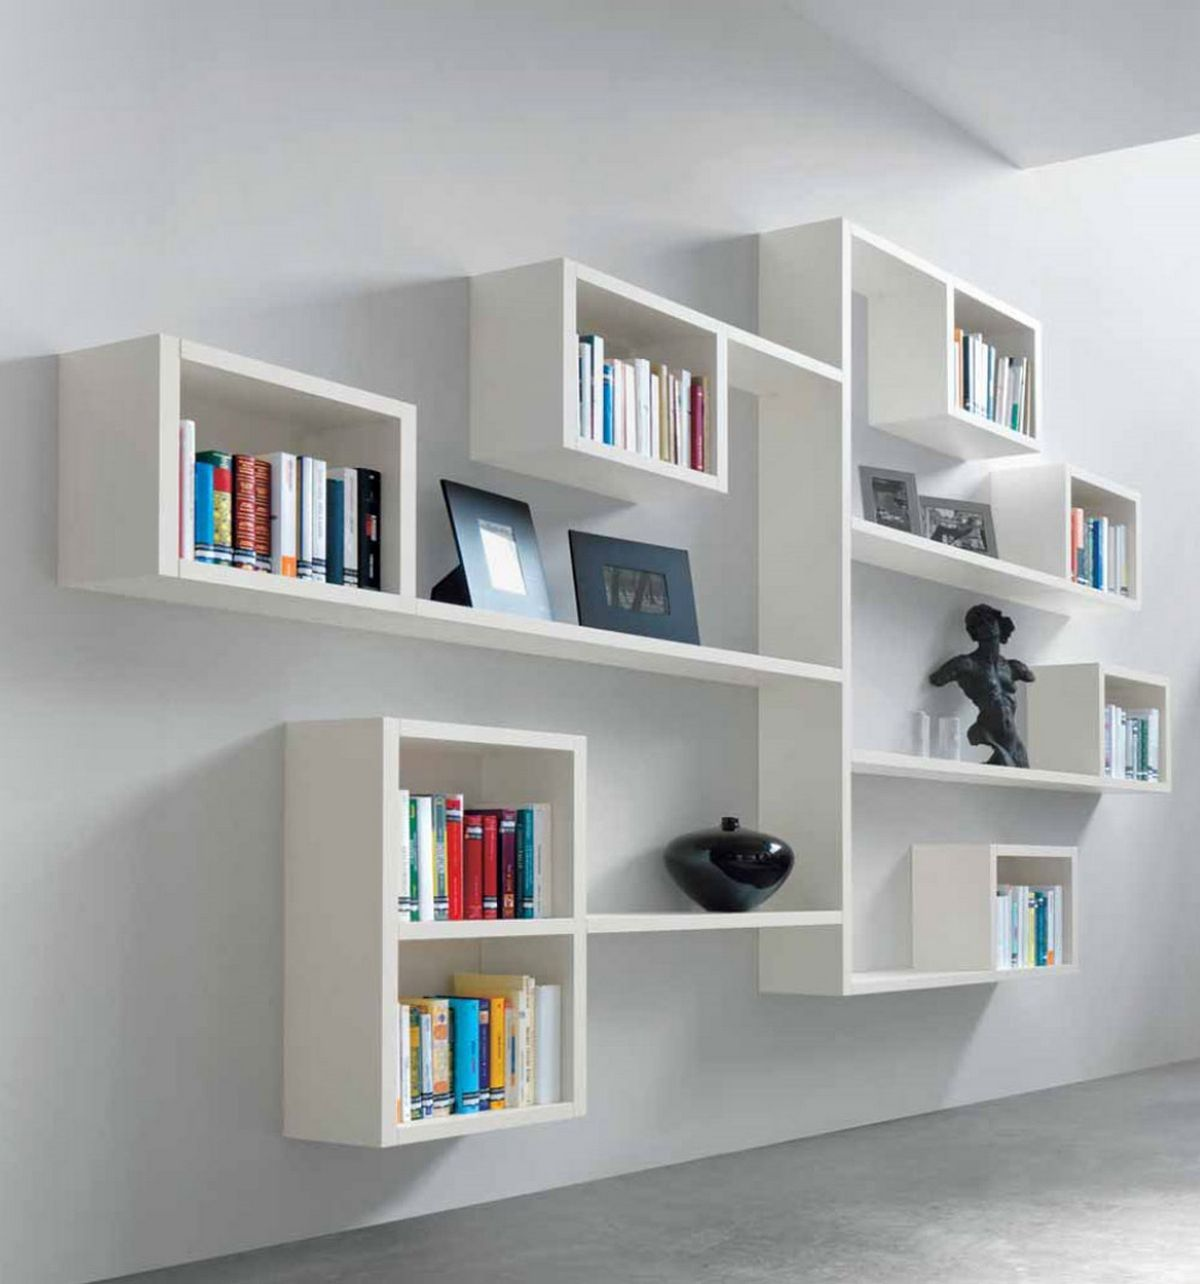 26 Of The Most Creative Bookshelves Designs   Pouted Online Lifestyle  Magazine. Bookshelf DesignBookshelf IdeasWall ... Design